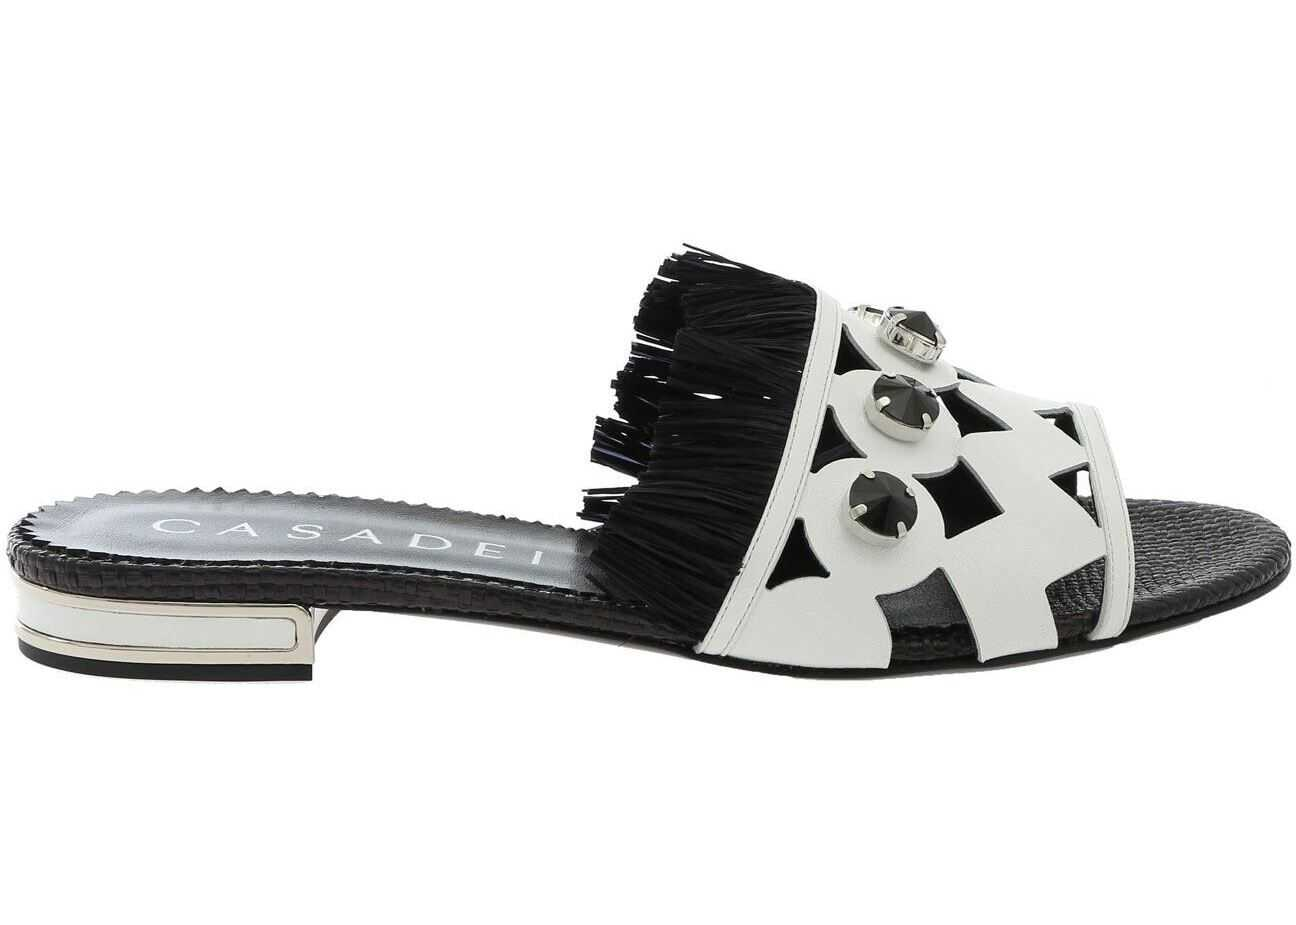 Casadei Minorca Sandals In Black And White With Fringes Black